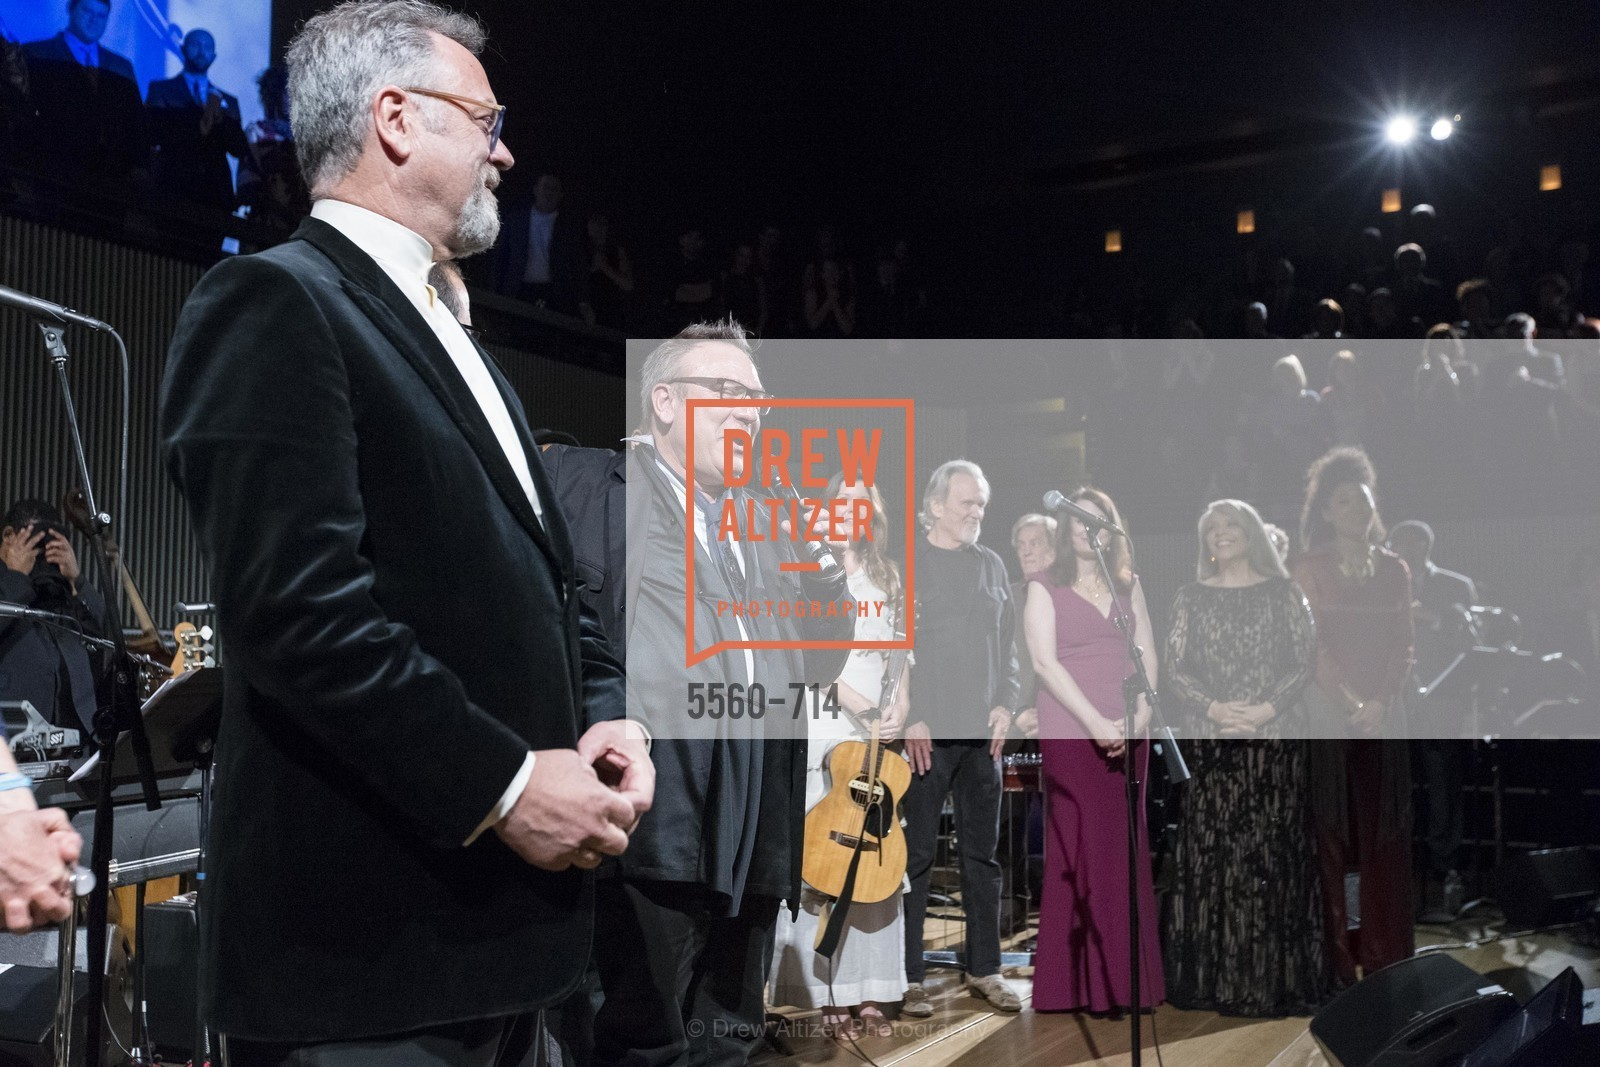 Nion McEvoy, Stanlee Gatti, SFJAZZ Gala 2015 Honors Joni Mitchell with Lifetime Achievement Award, US, May 9th, 2015,Drew Altizer, Drew Altizer Photography, full-service agency, private events, San Francisco photographer, photographer california